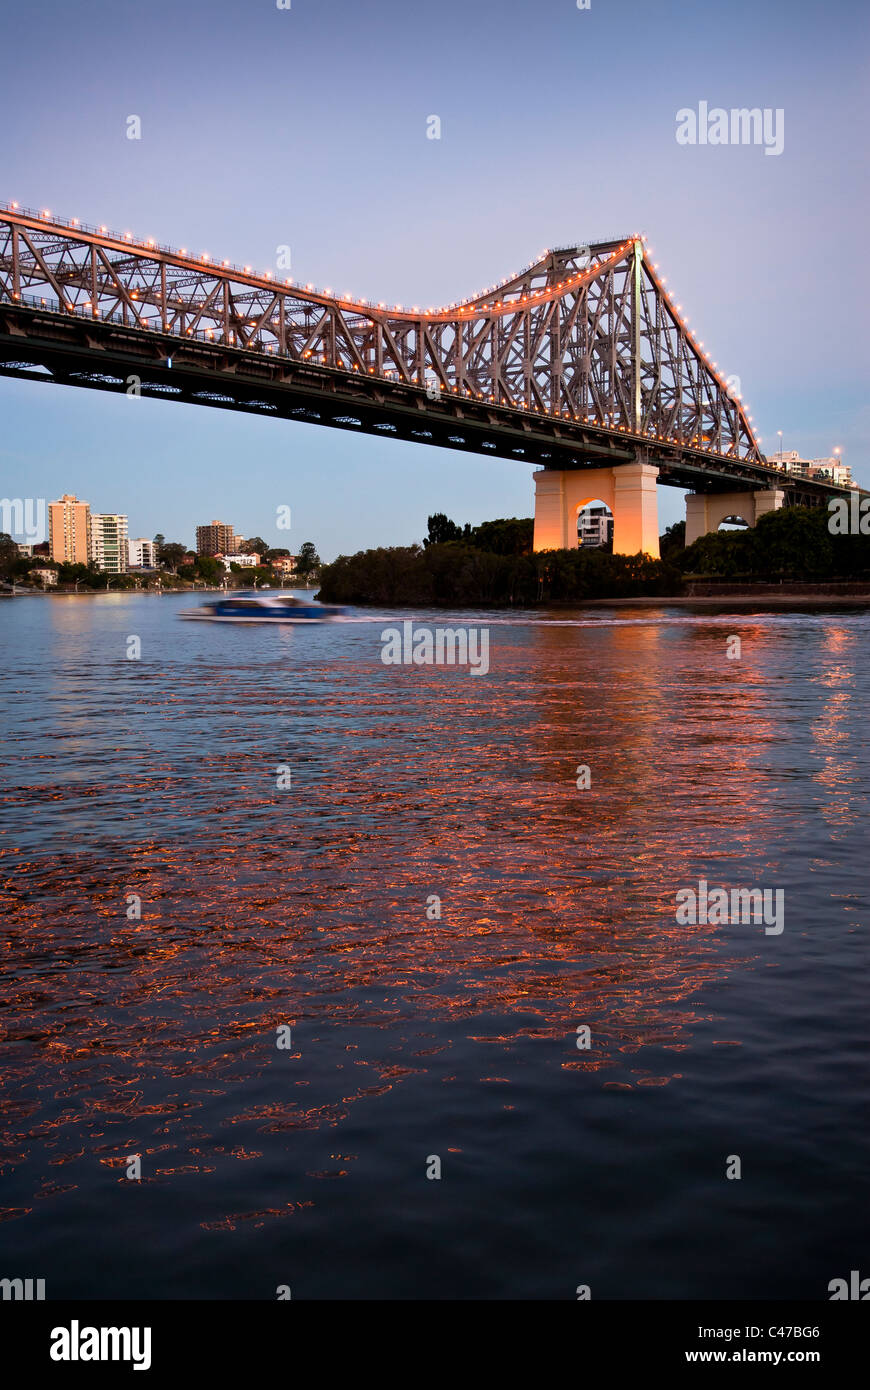 Story Bridge Brisbane at dusk - Stock Image